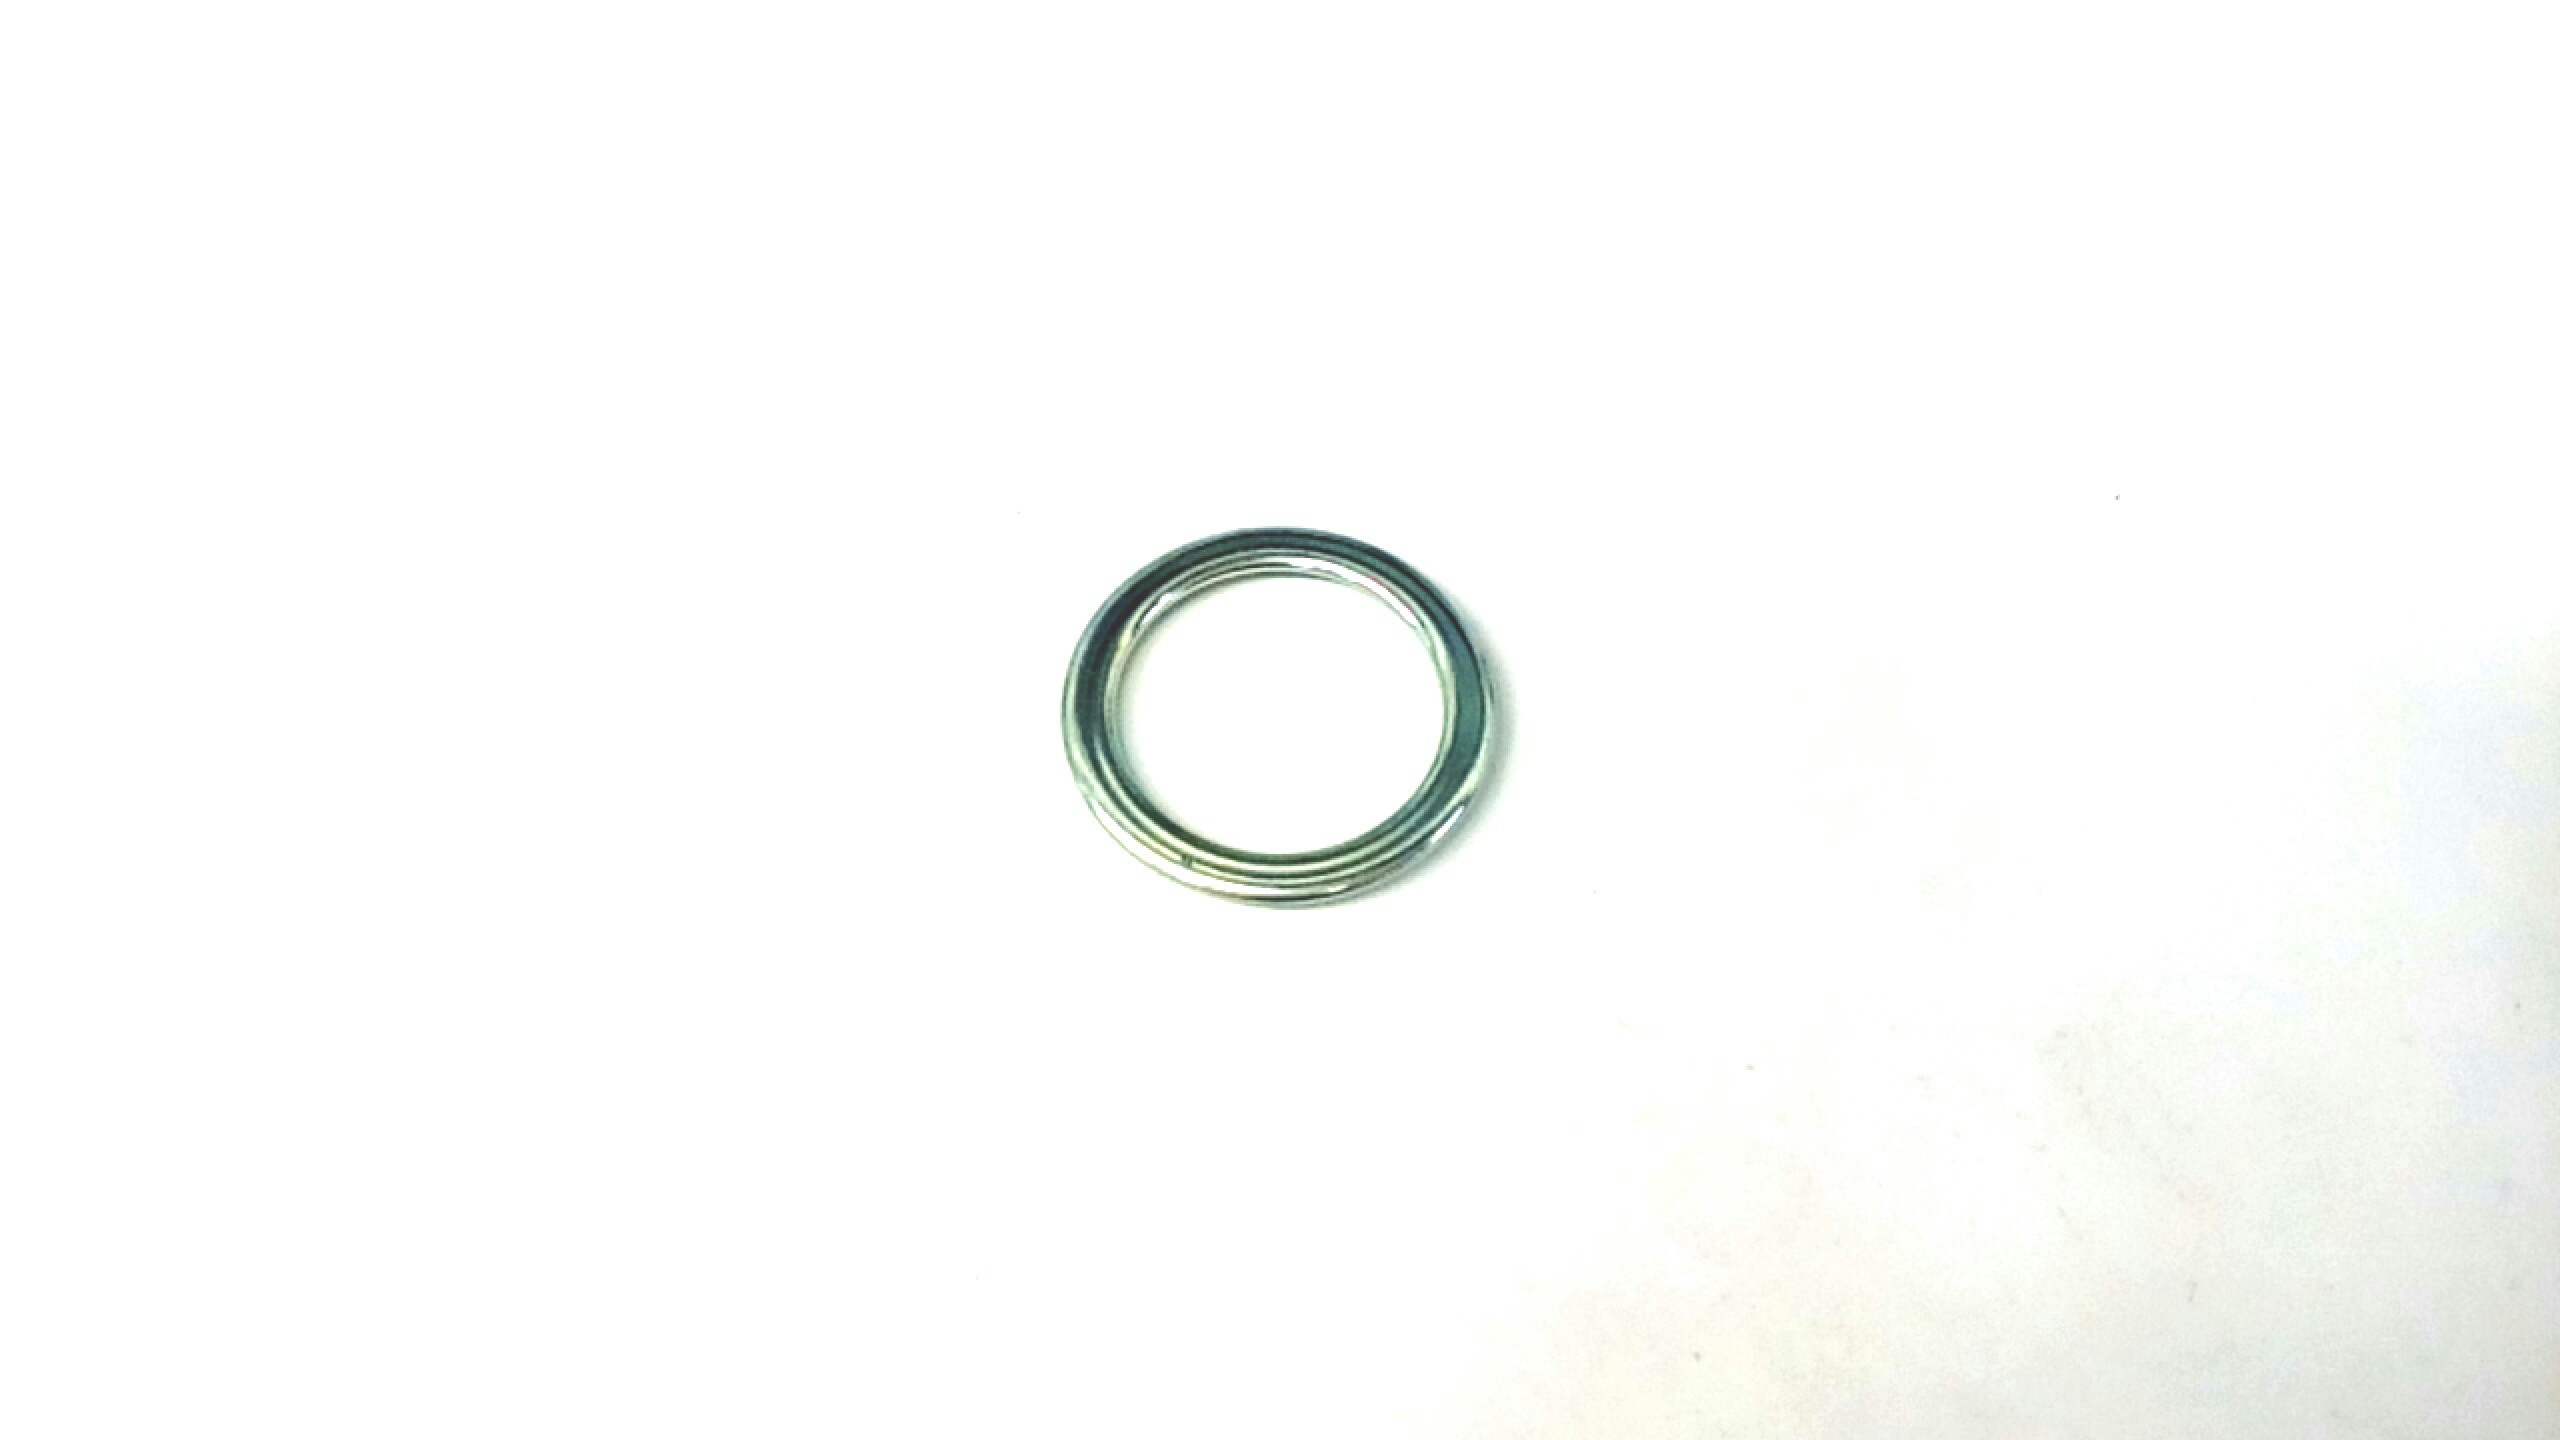 Diagram Drain Plug Gasket for your 2010 Subaru WRX